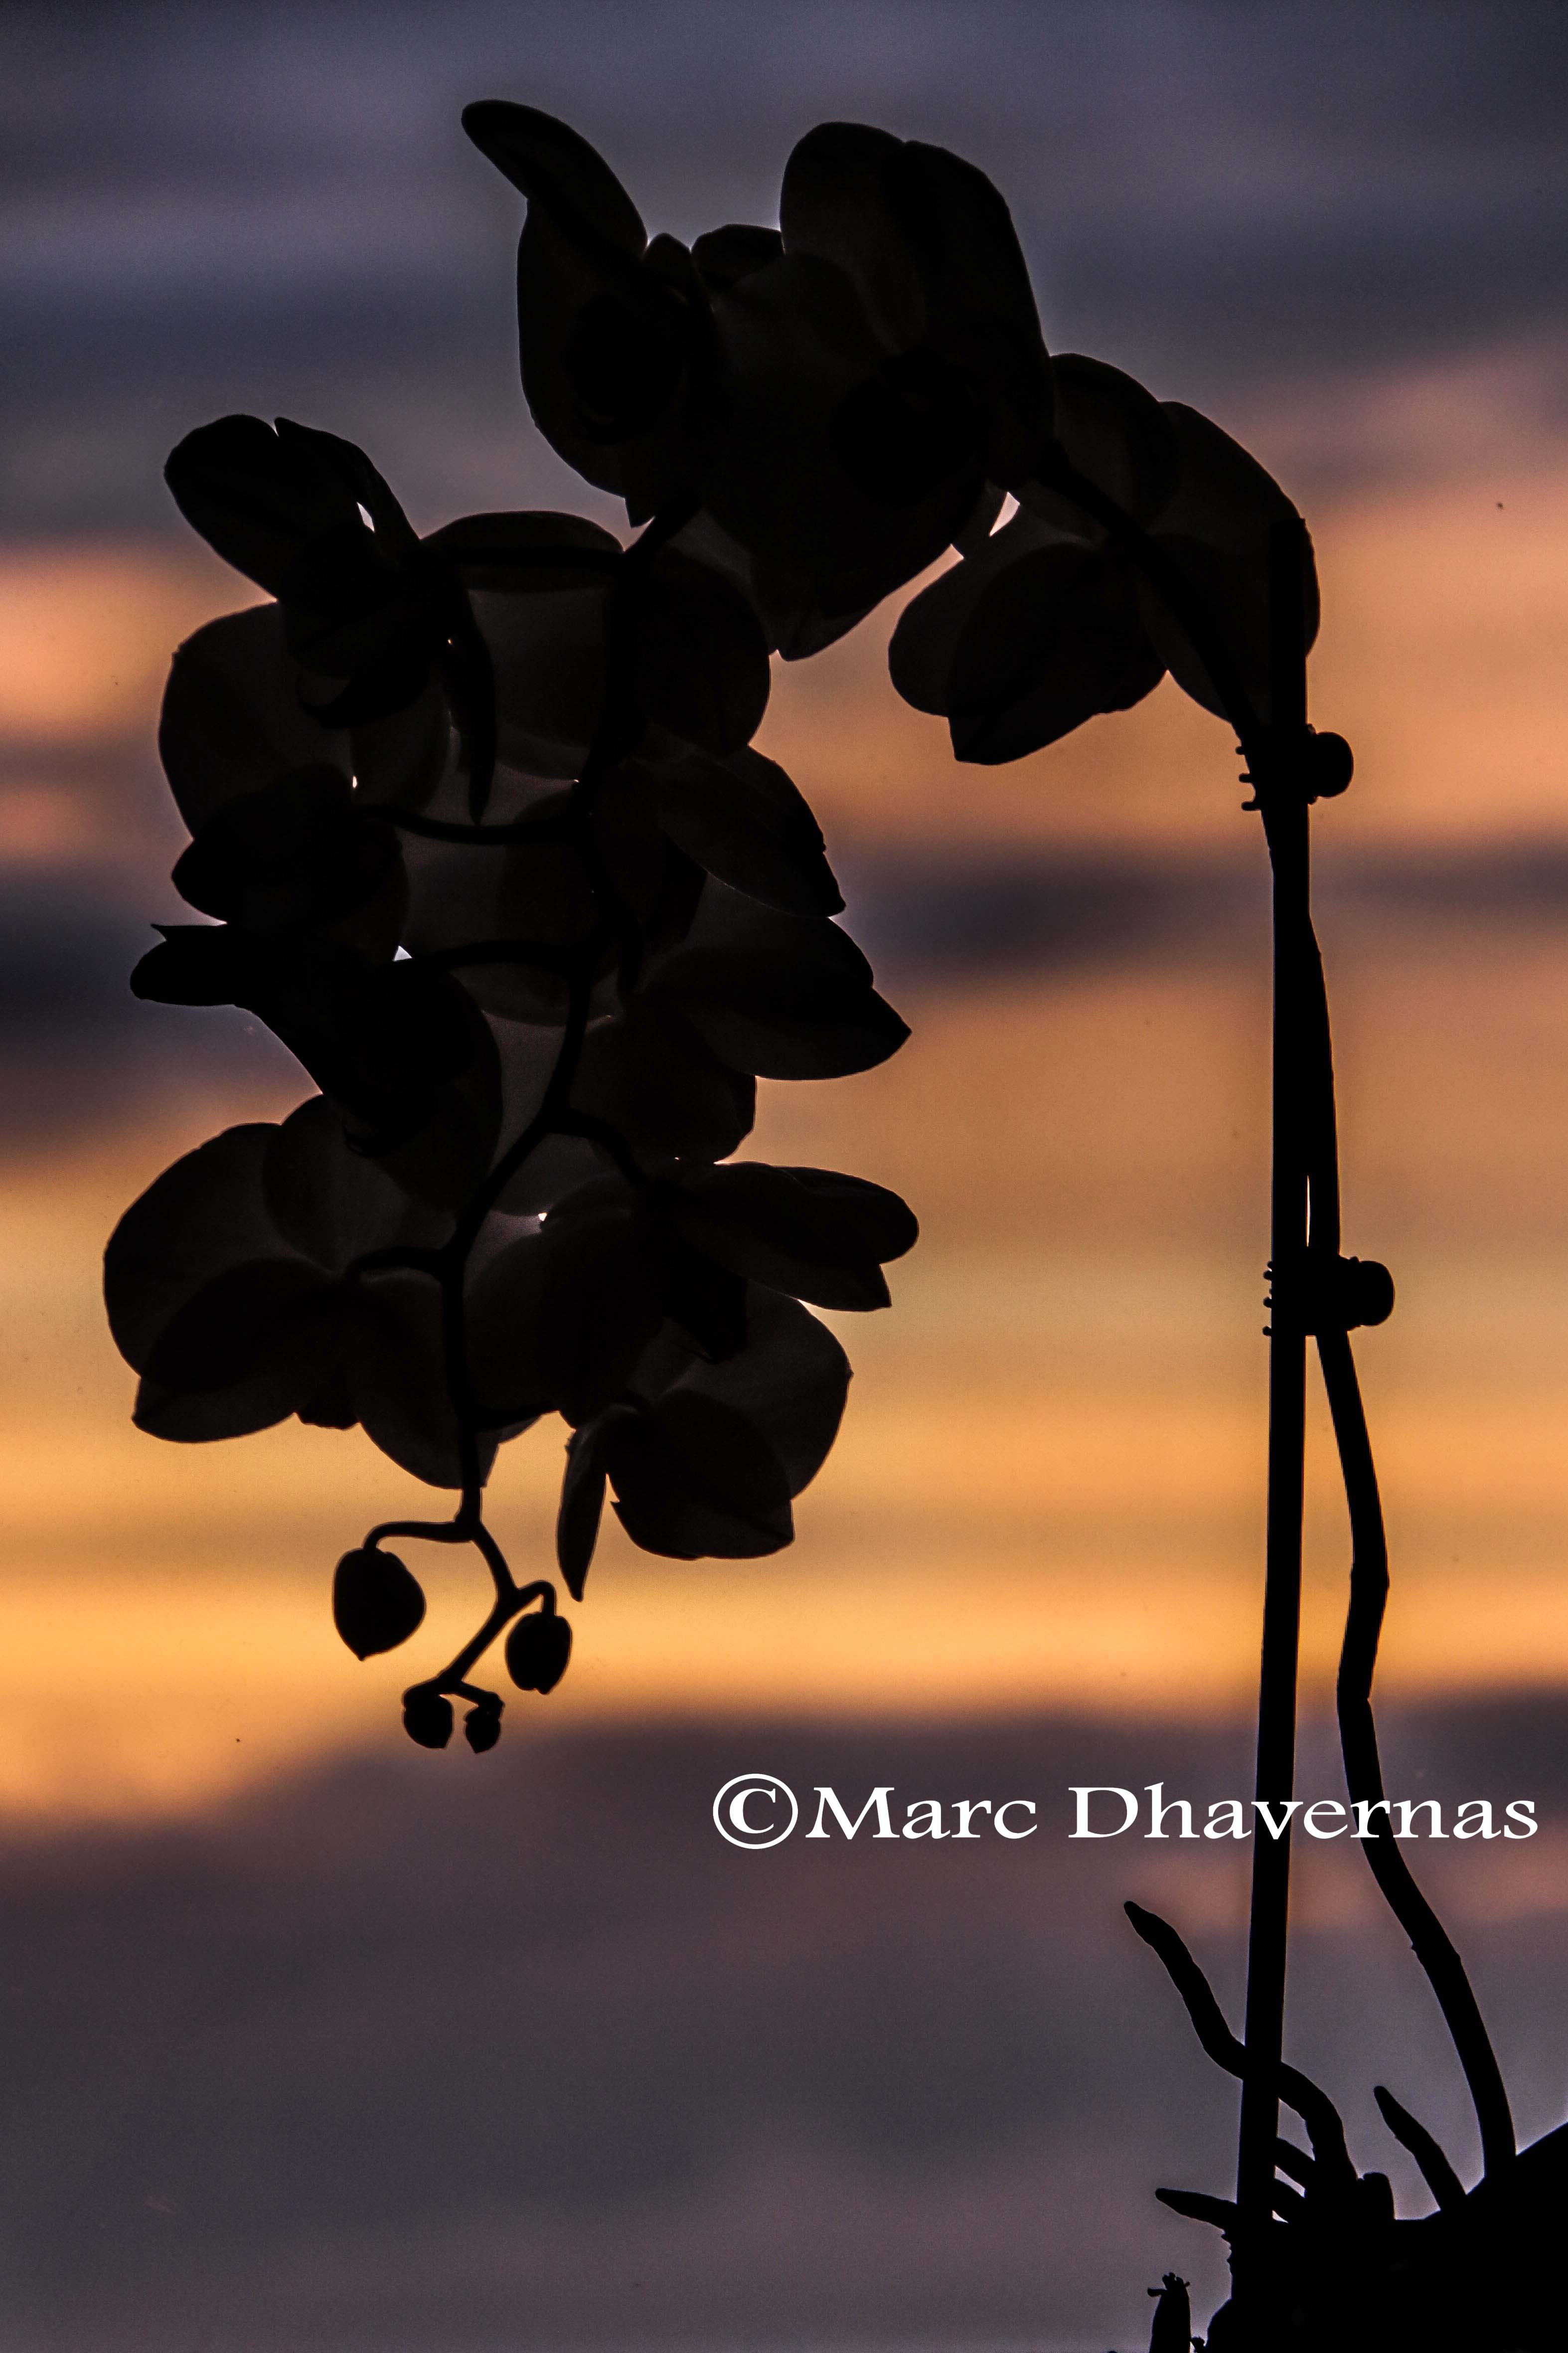 Orchid in a sunset